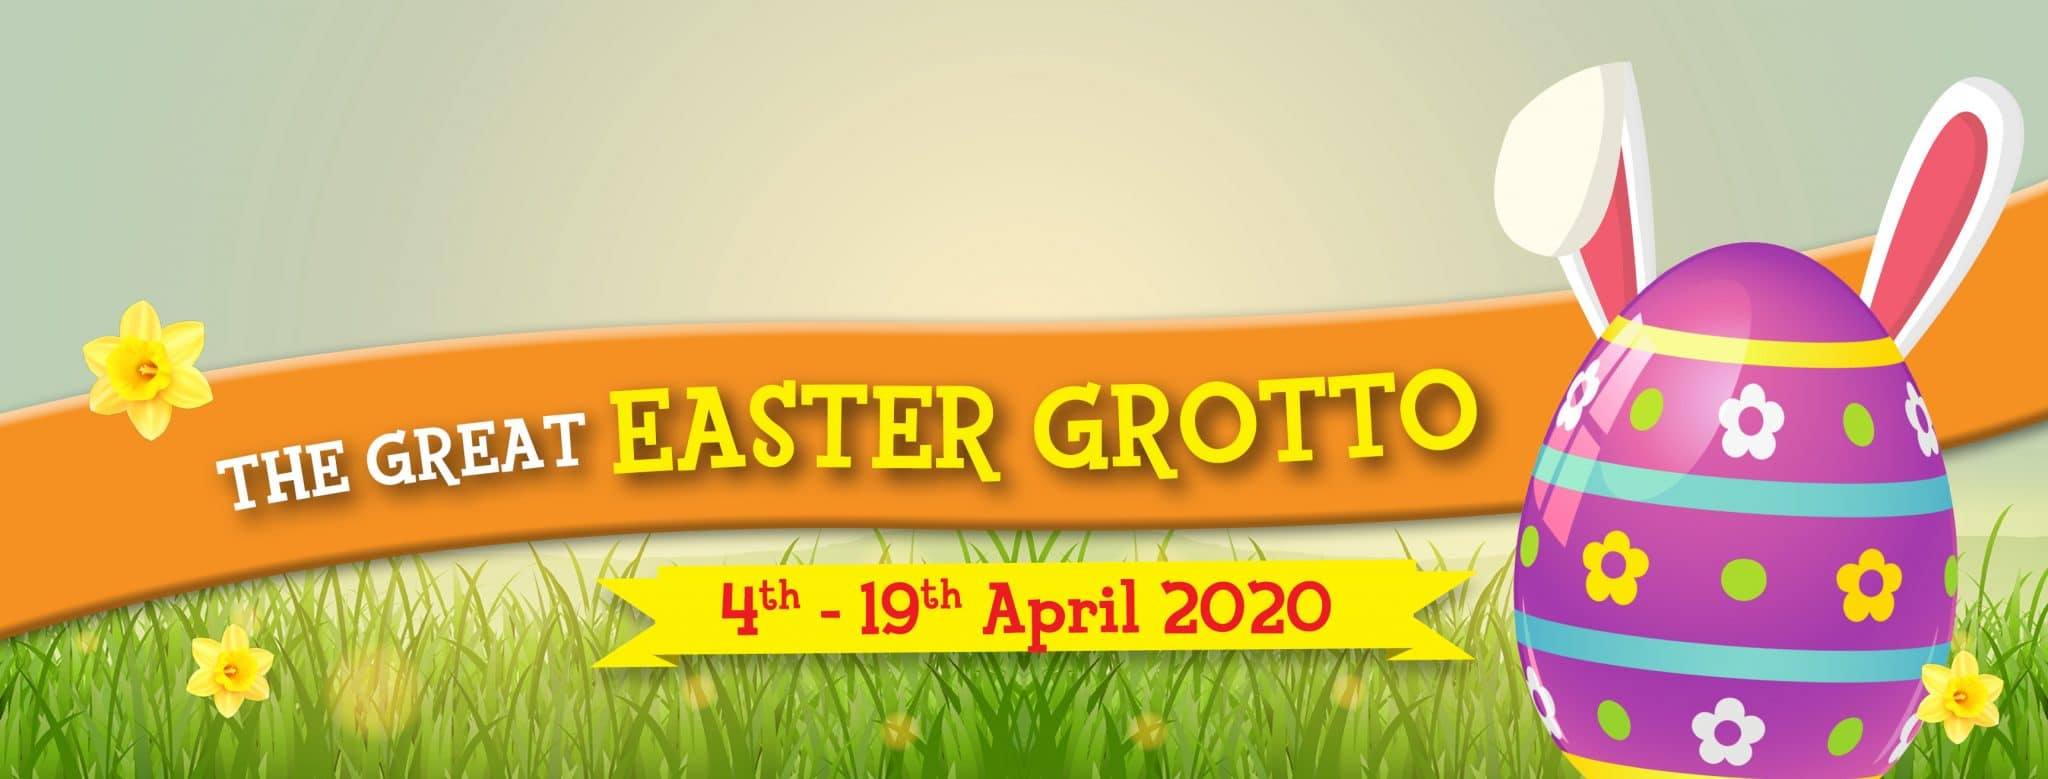 The Great Easter Grotto